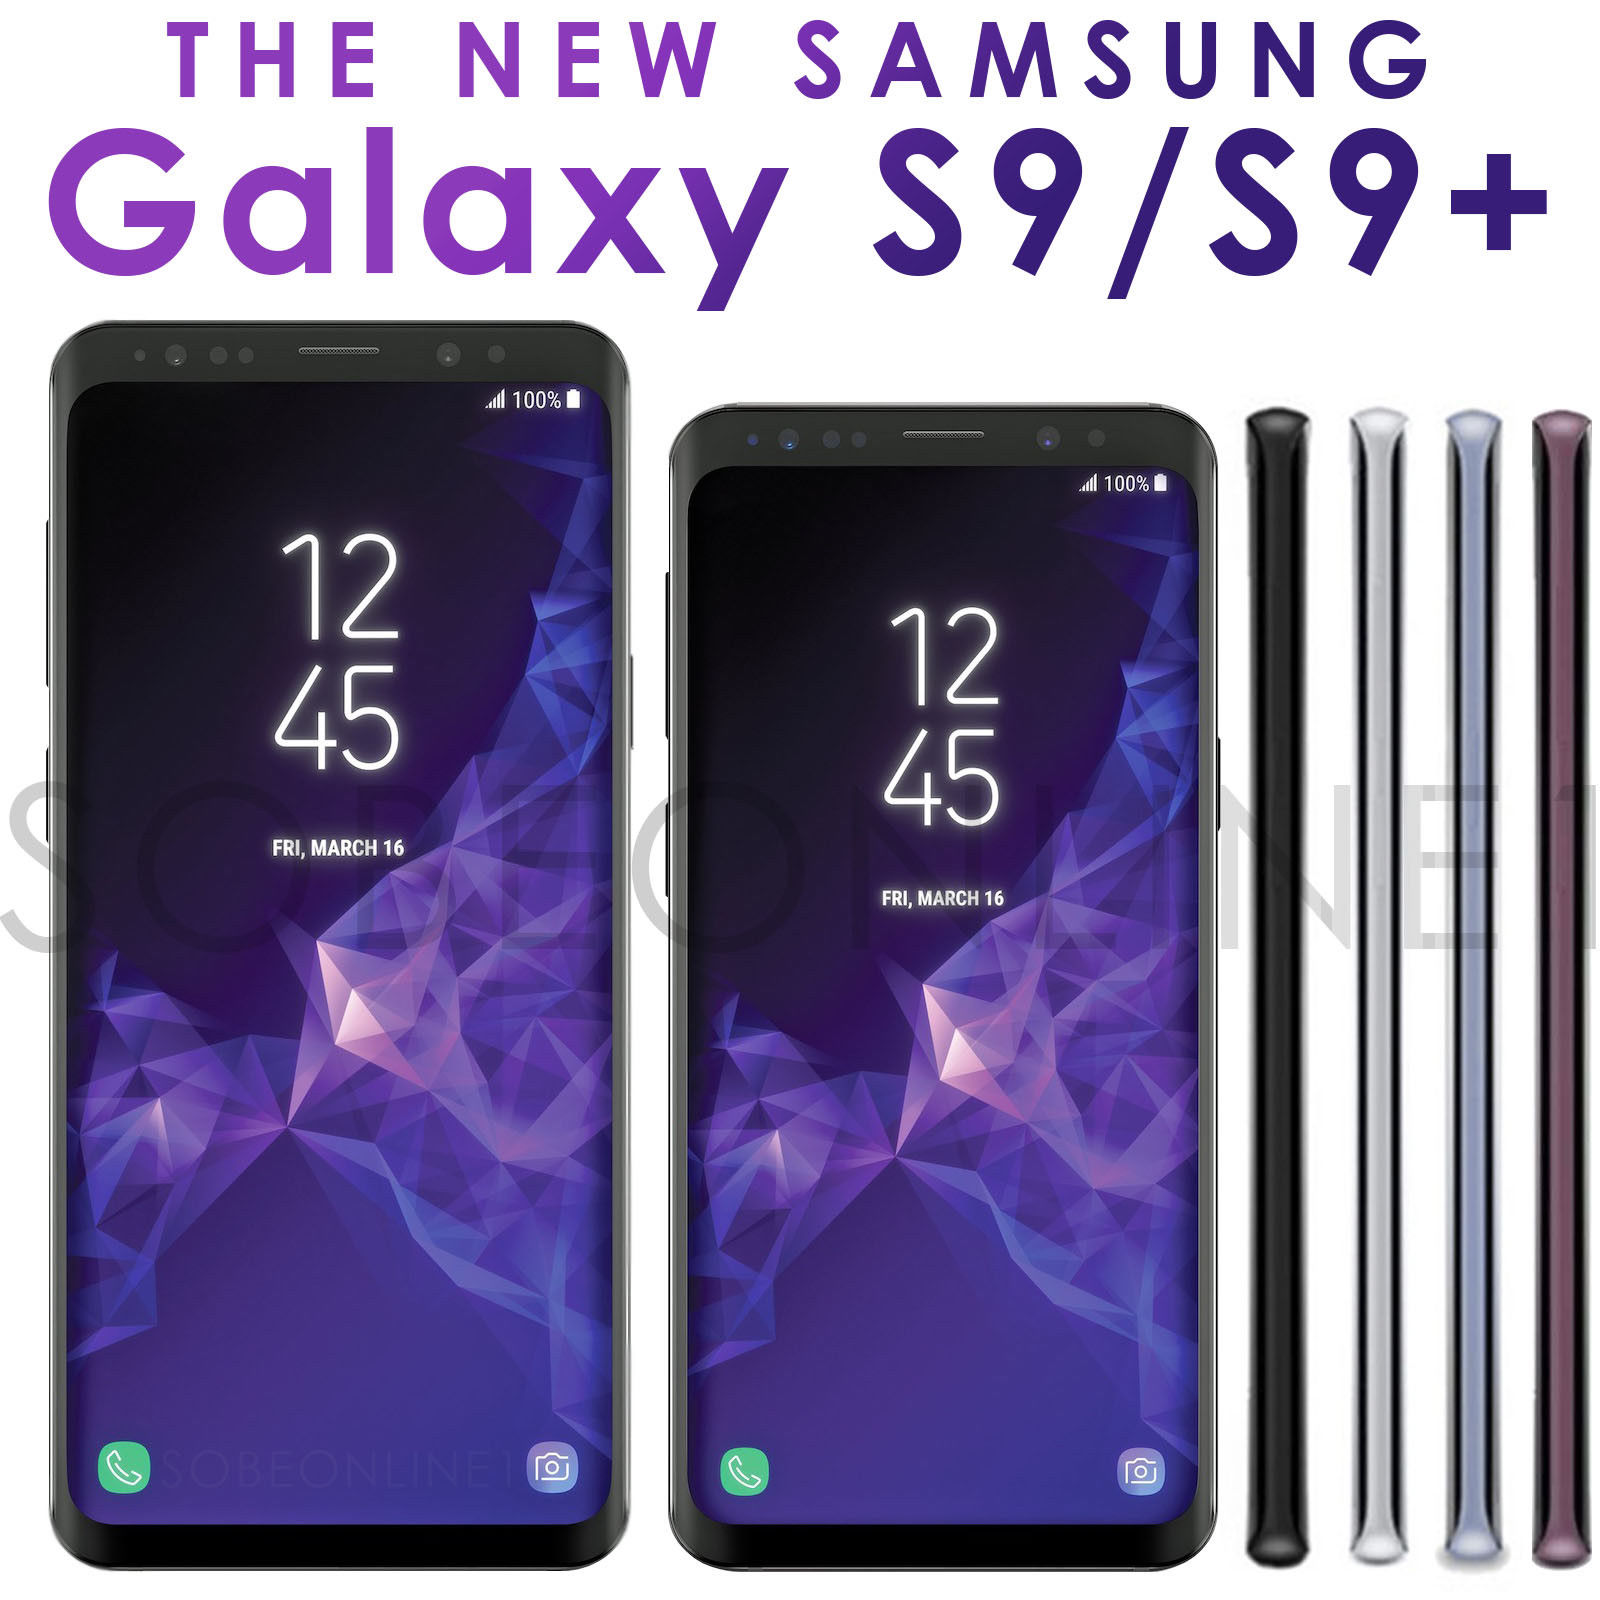 samsung galaxy s9 domiungo